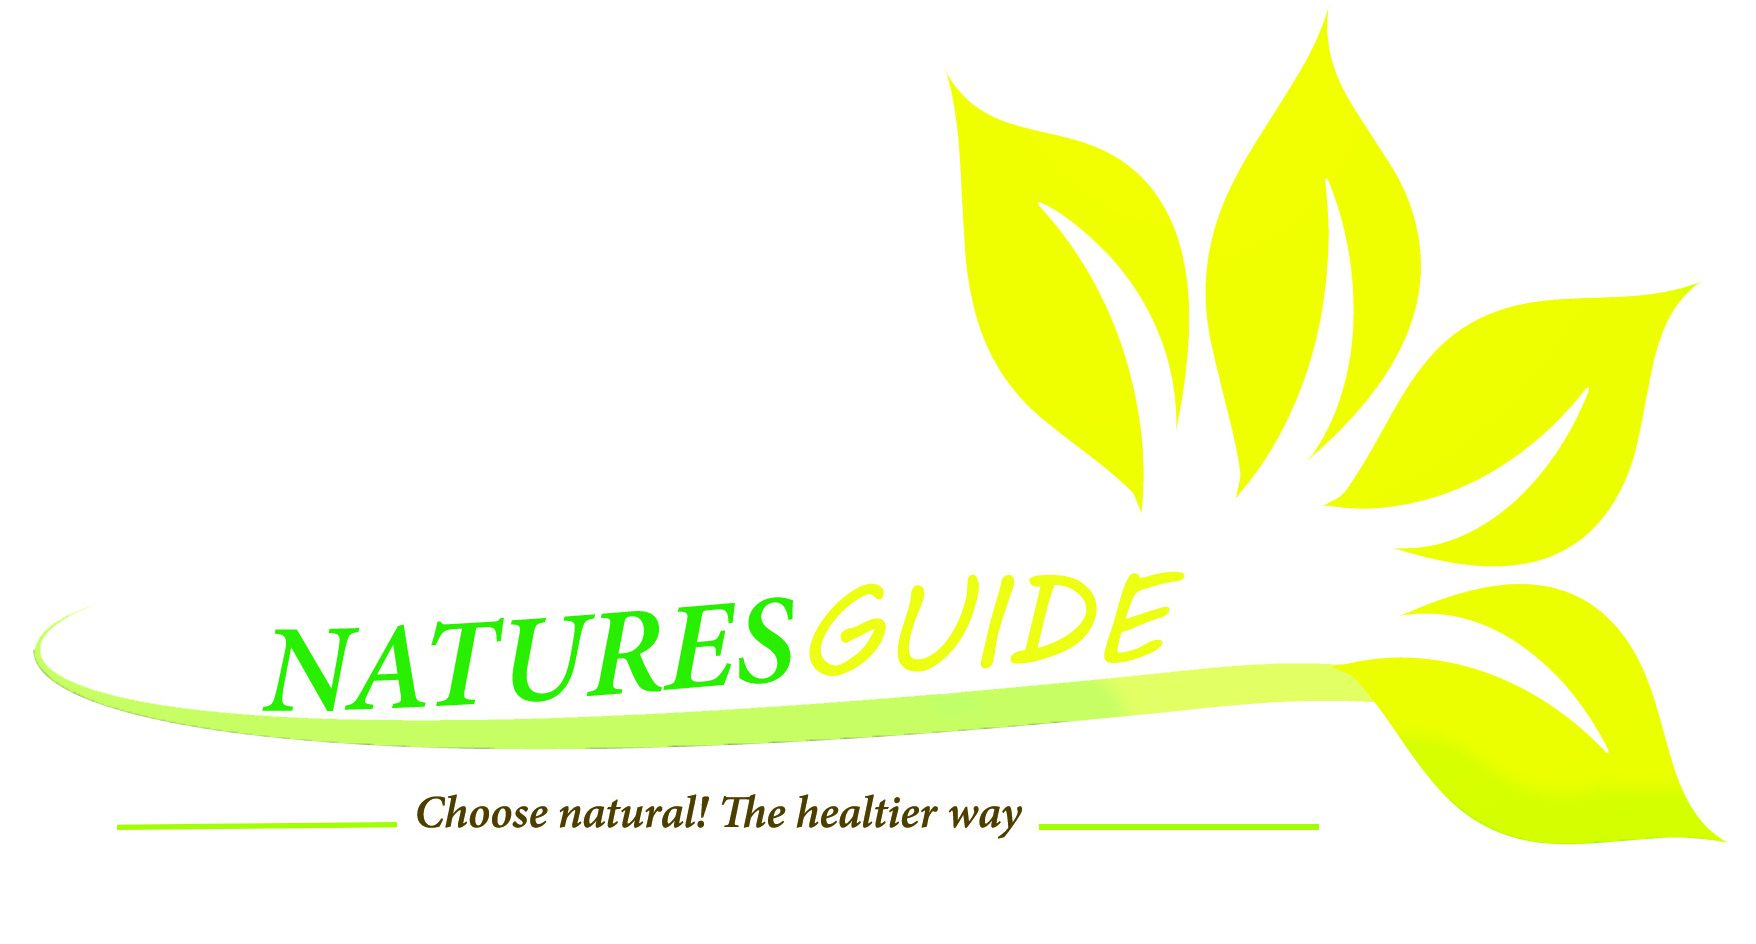 NATURESGUIDE